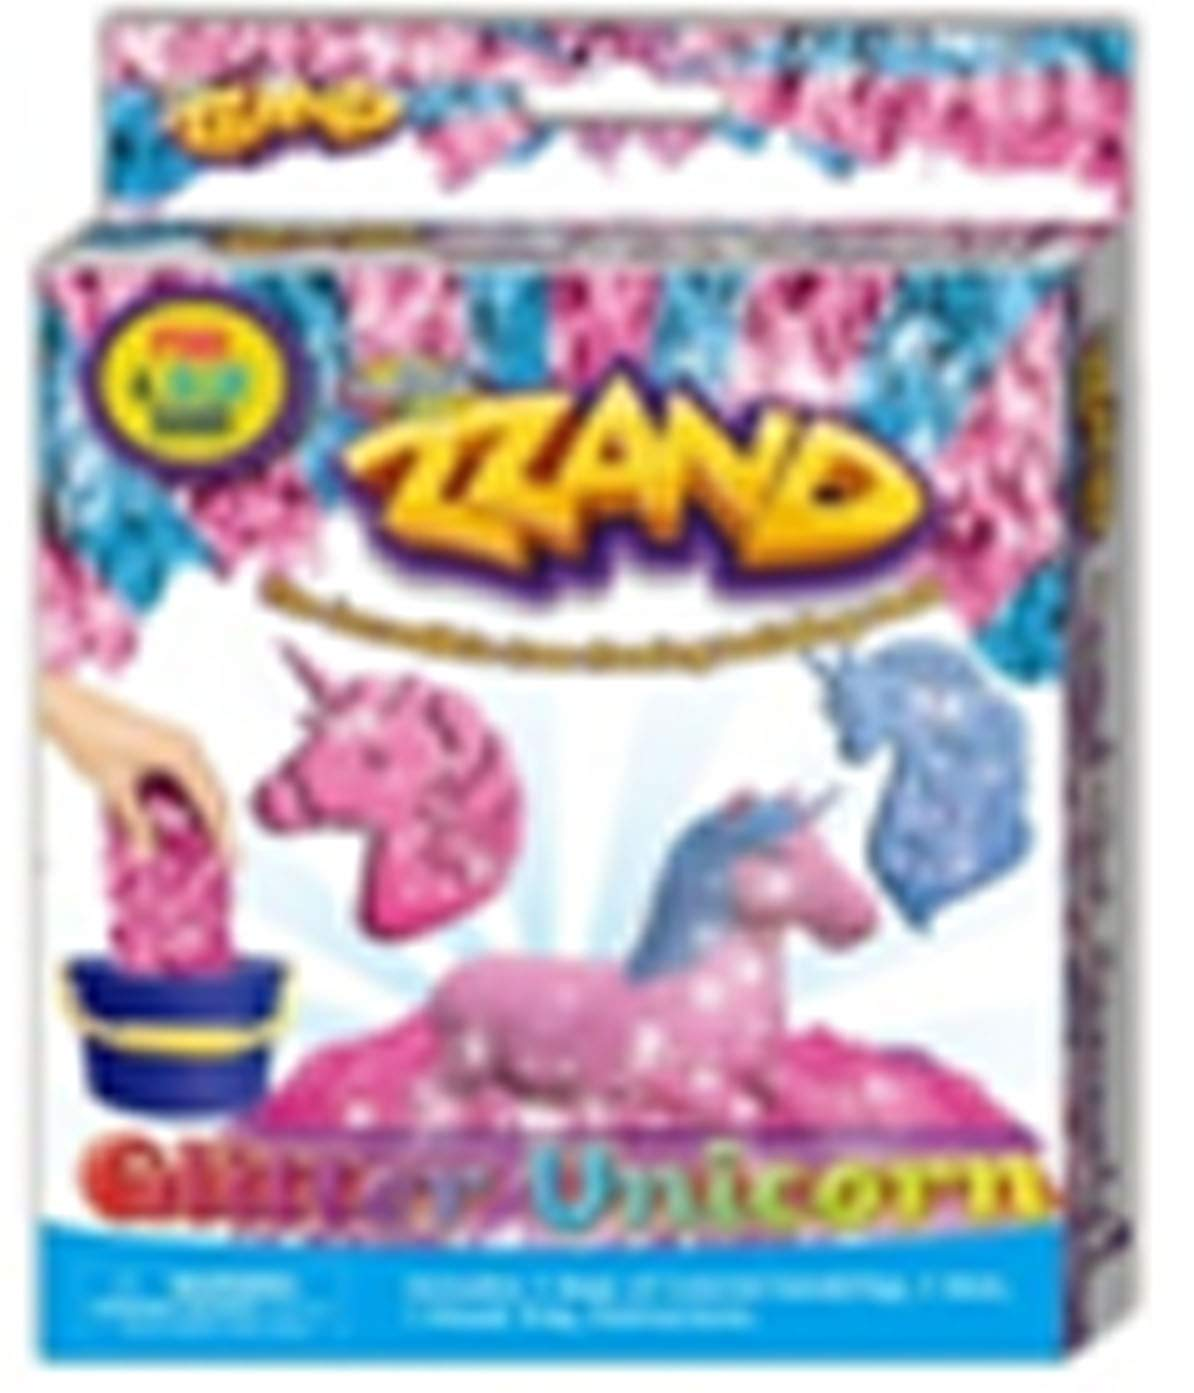 Dinosaur A Kinetic Sensory Activity Zzand Kids Children Play Free Flowing Sand Kit Does Not Stick To Hands